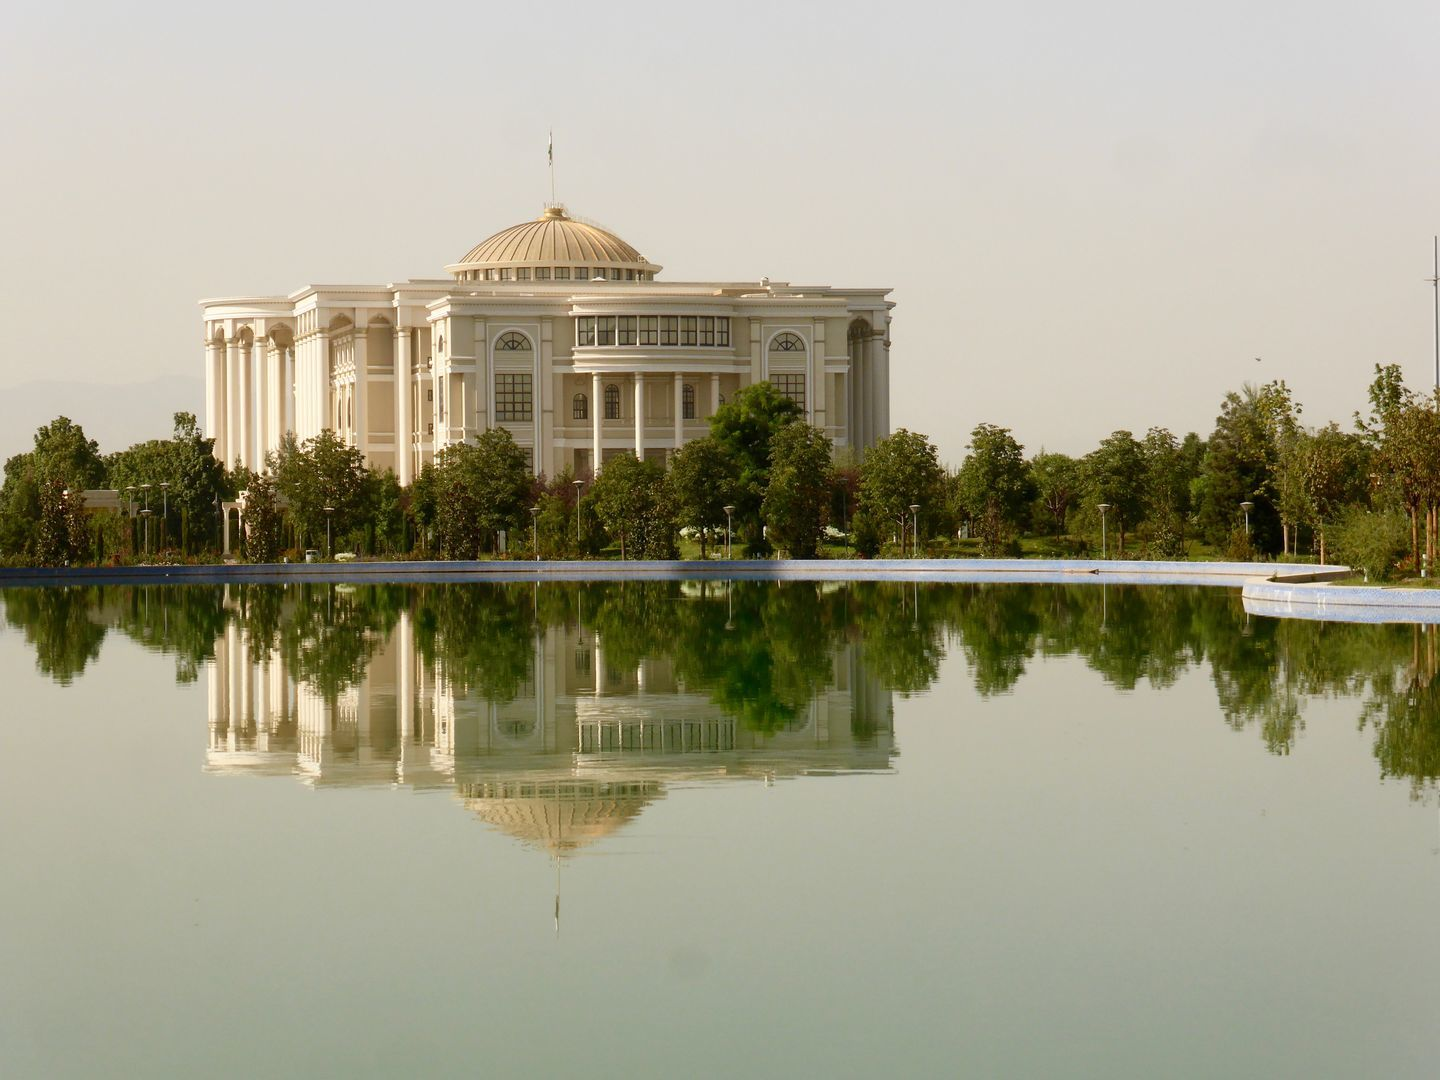 Arrival in Dushanbe, City Tour